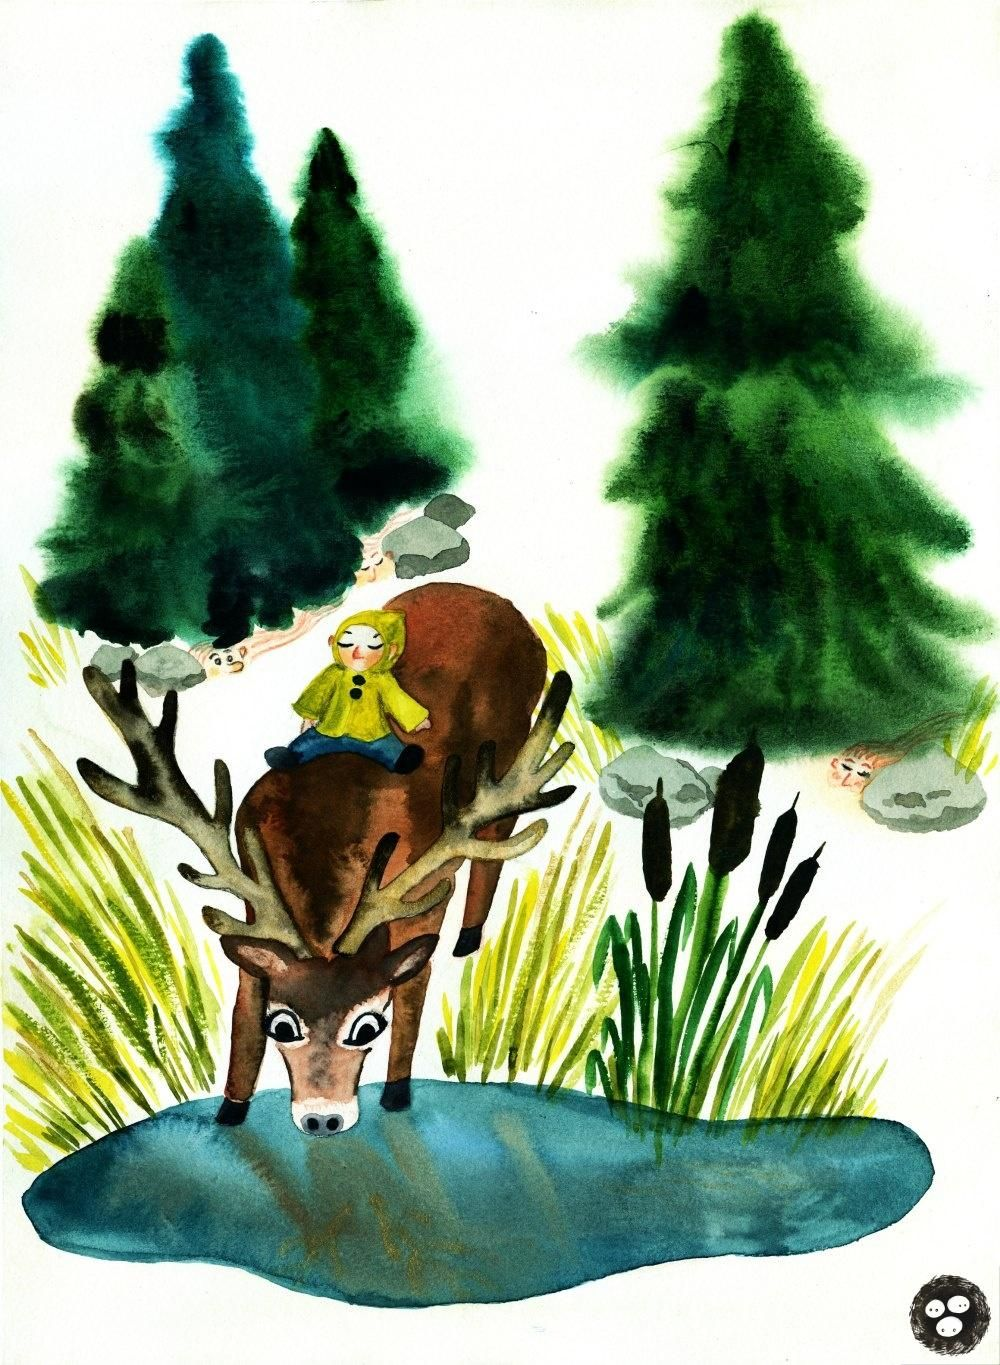 Whimsical Animals with Watercolors - SAMPLE PROJECT - image 3 - student project